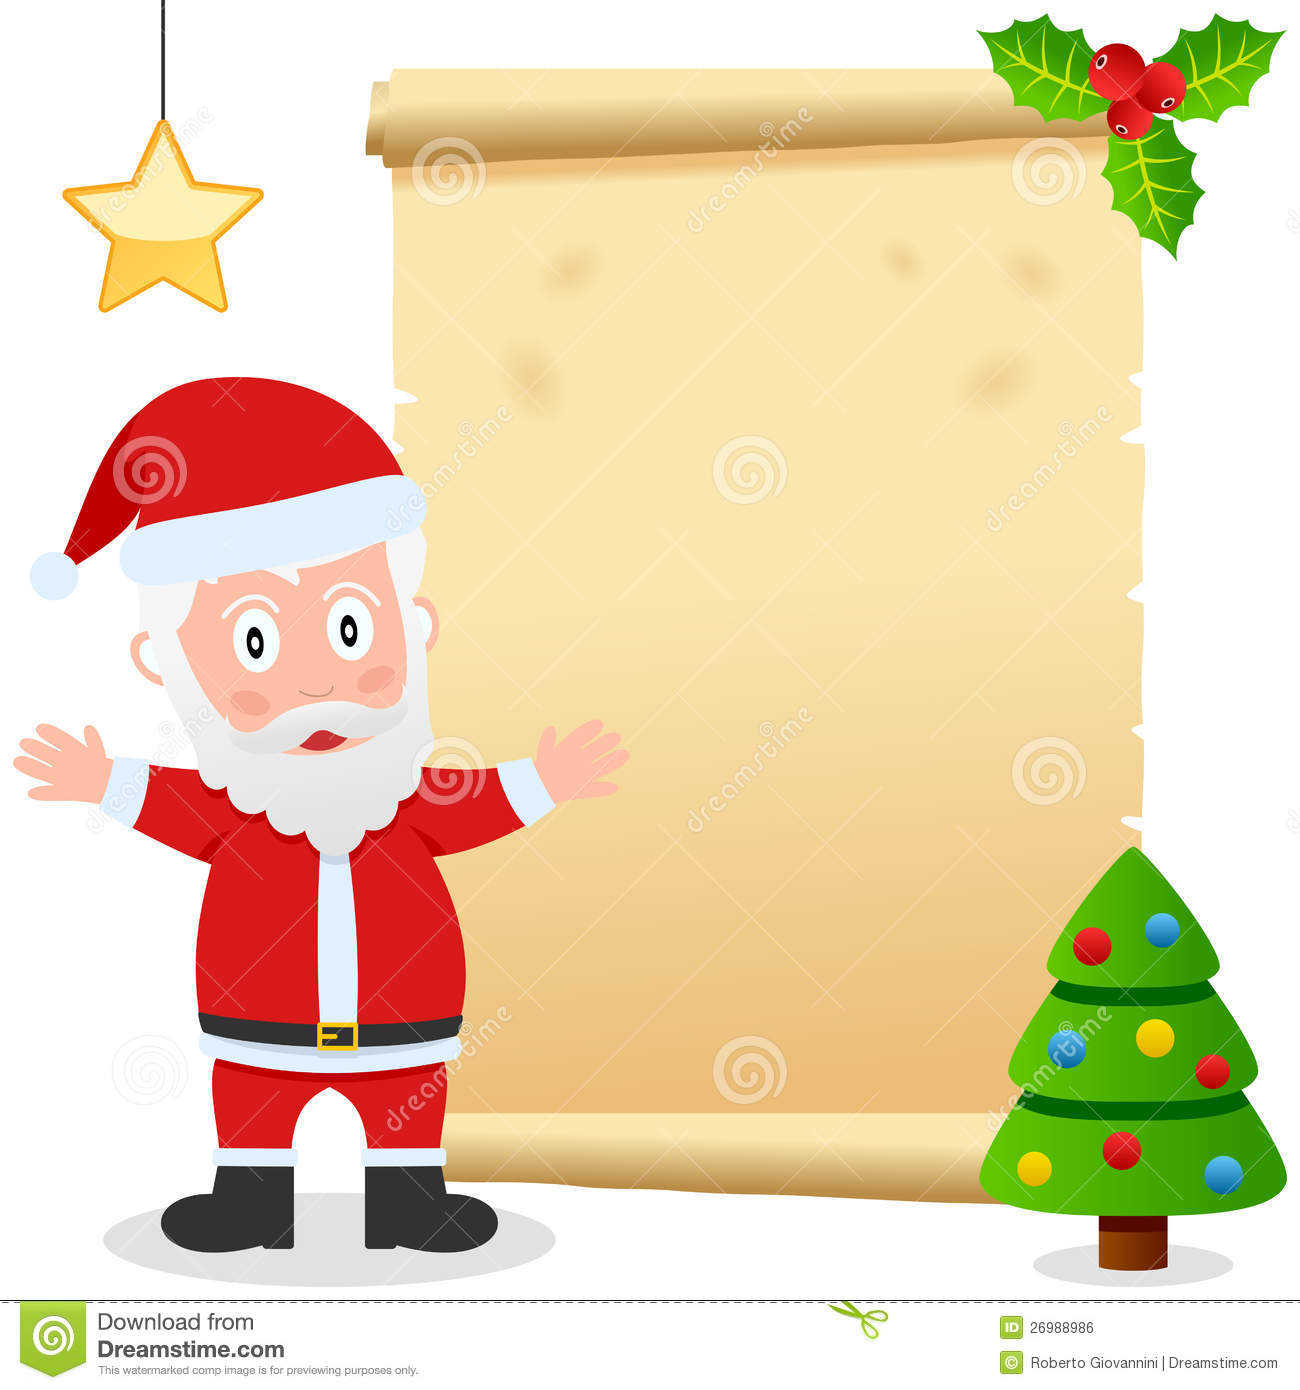 Santa Claus And Old Parchment Royalty Free Stock Image ...